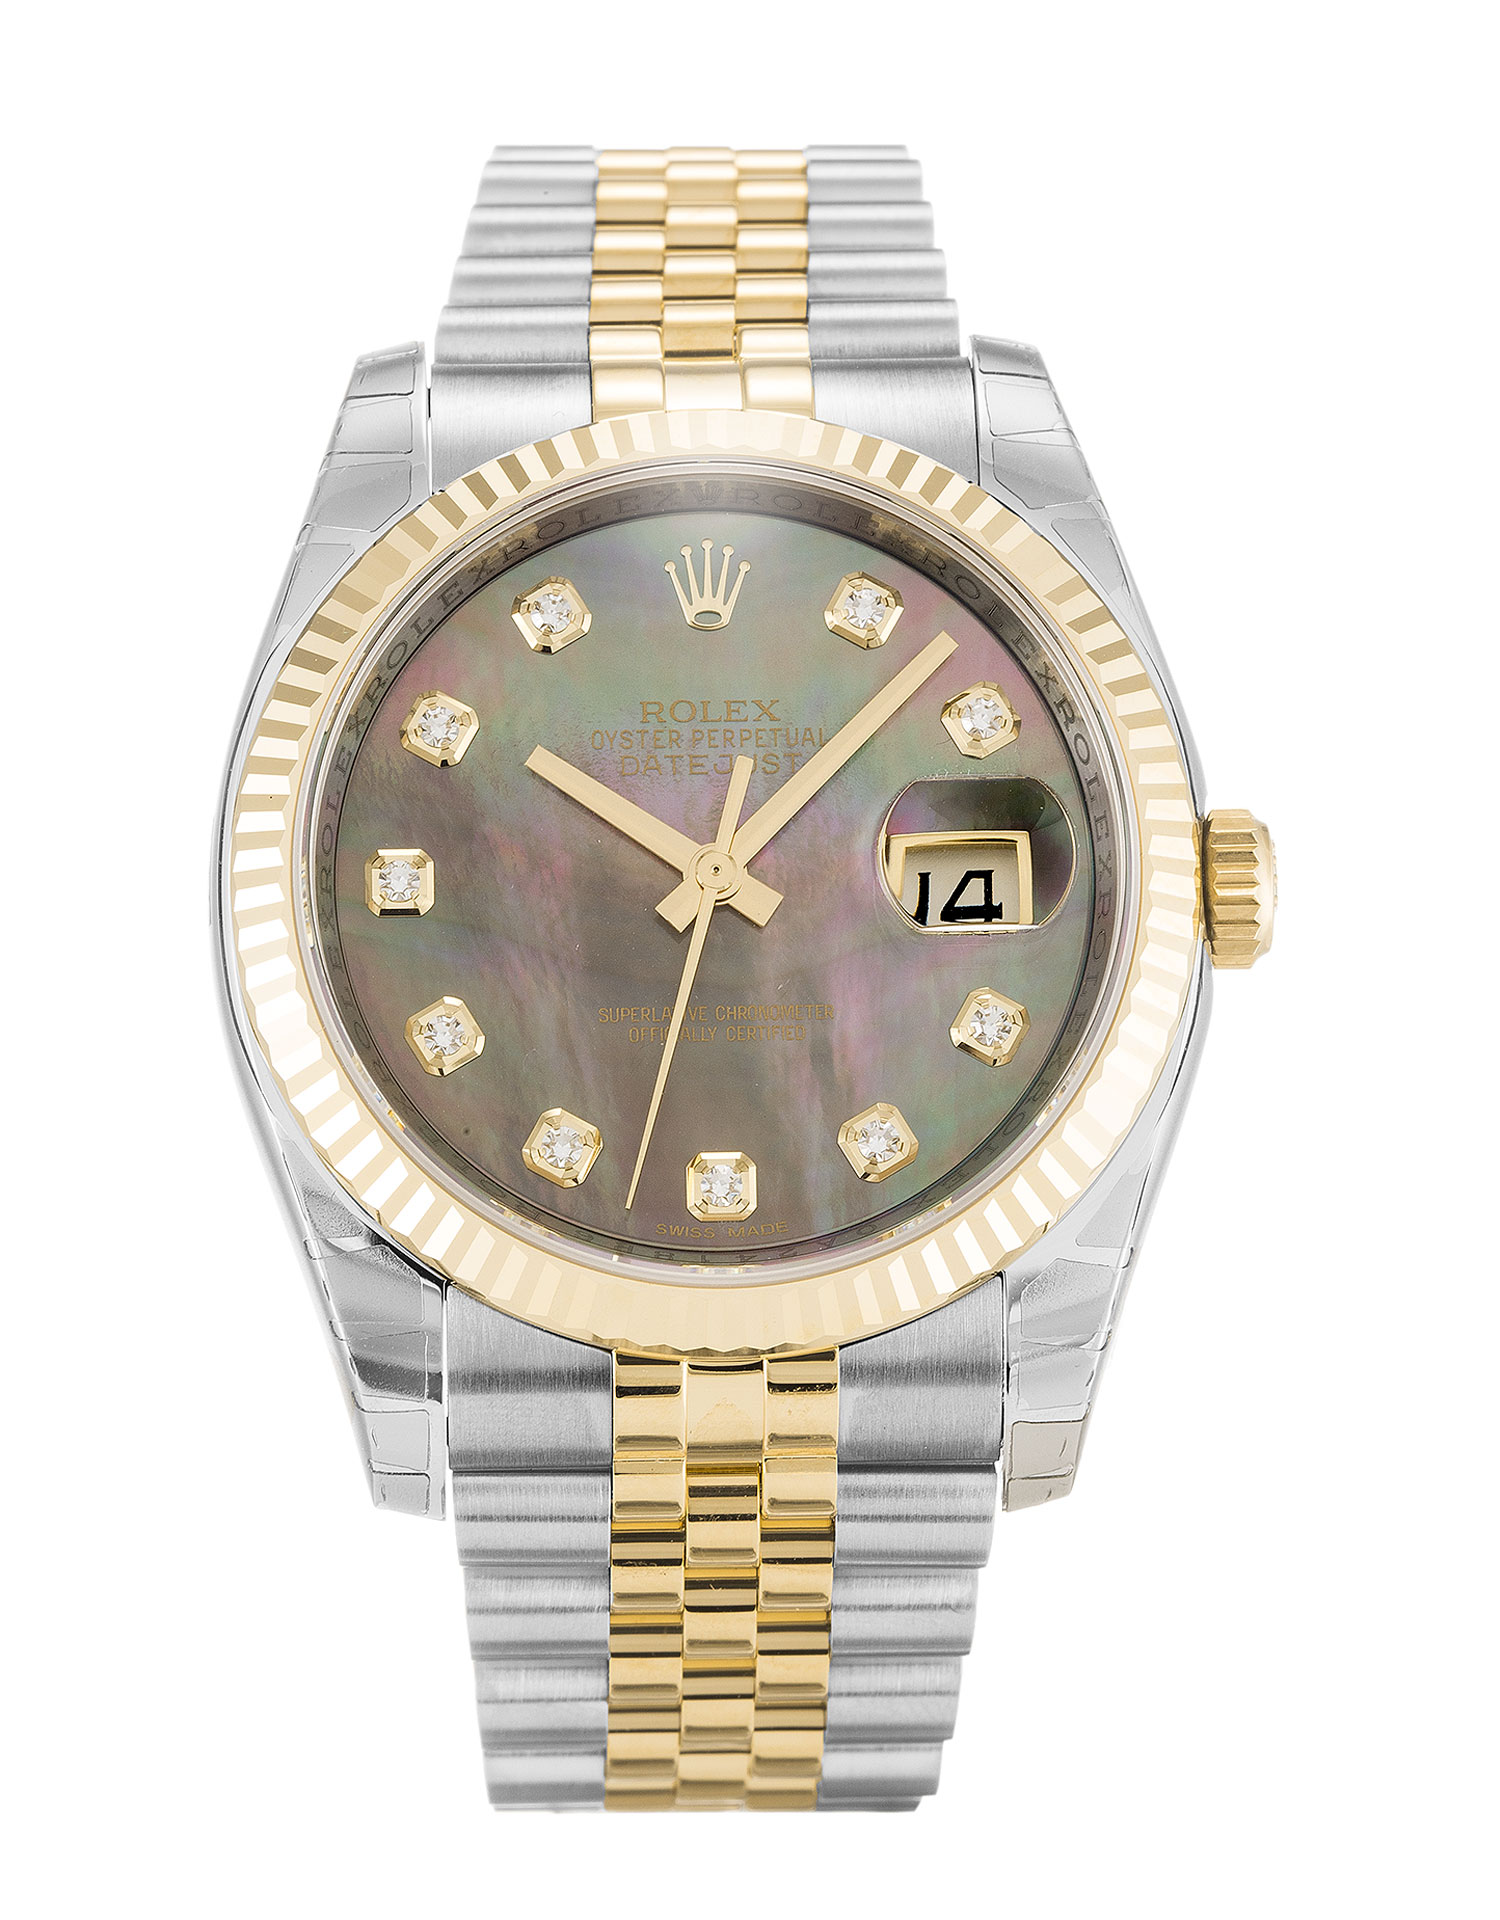 Rolex Datejust 116233 Unisex 36 Mm Steel & Yellow Gold Case Automatic Movement – iapac.to